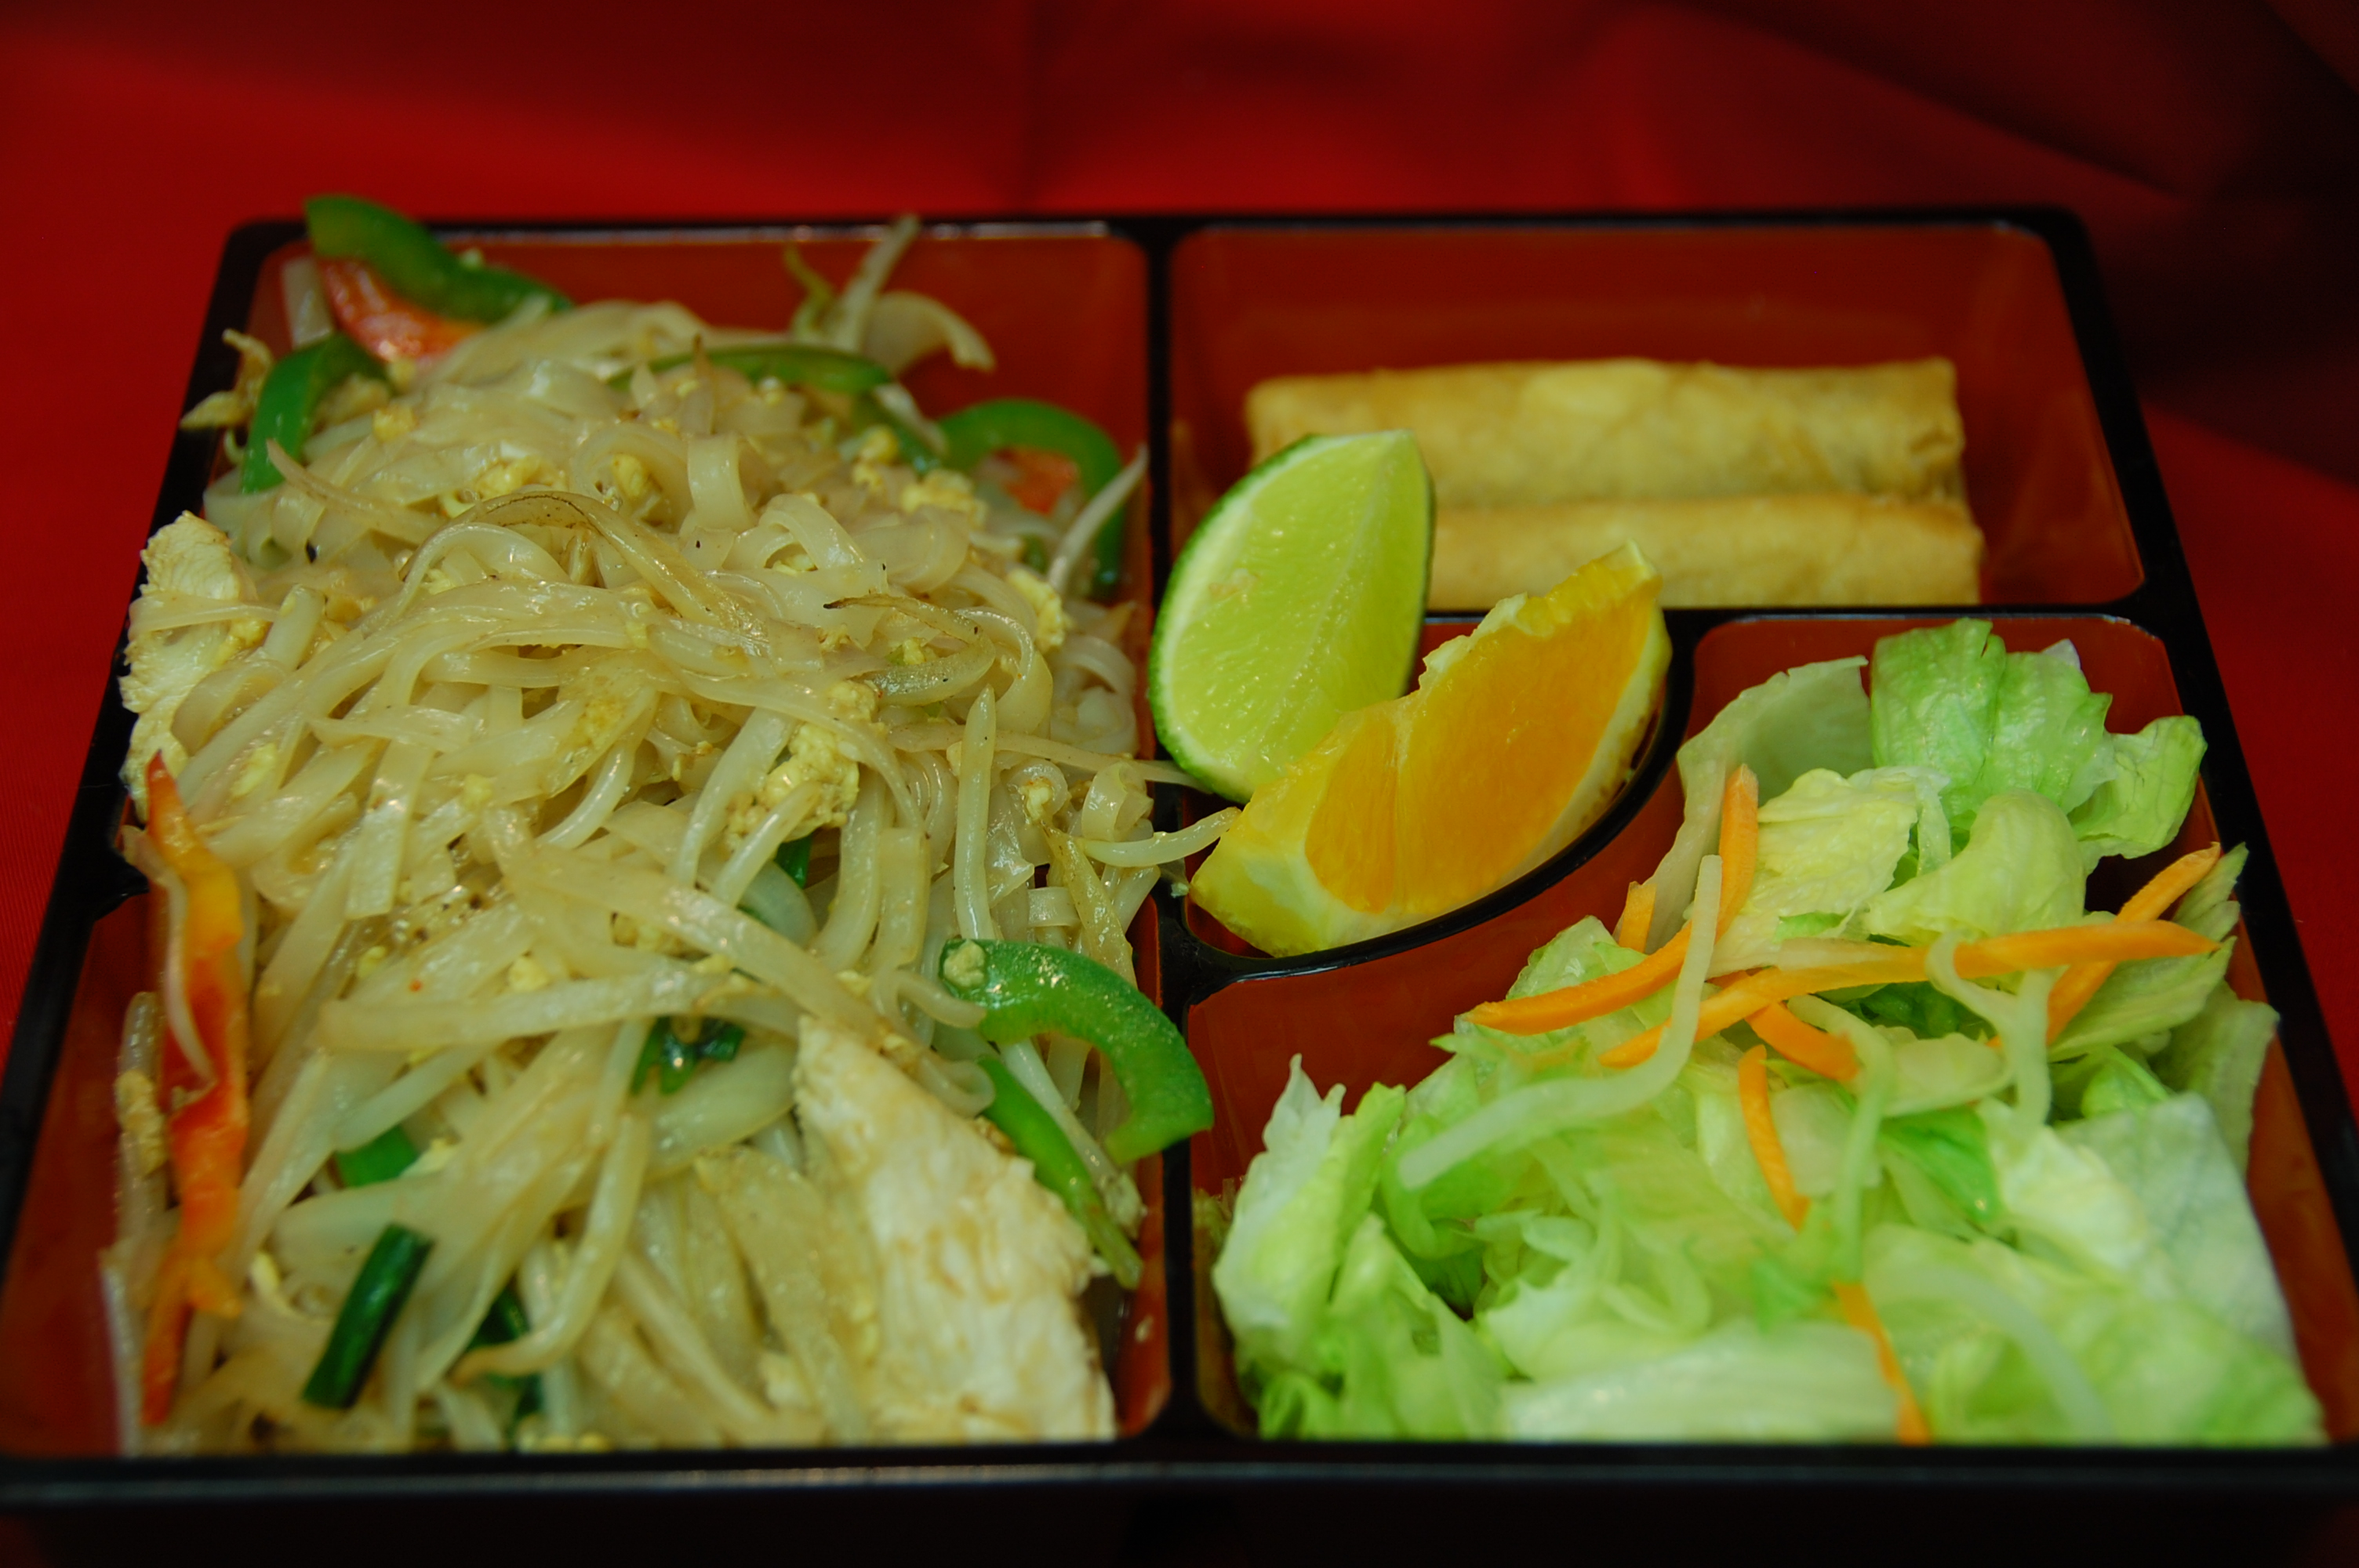 bento box filled with rice, egg rolls, salad and pad thai noodles